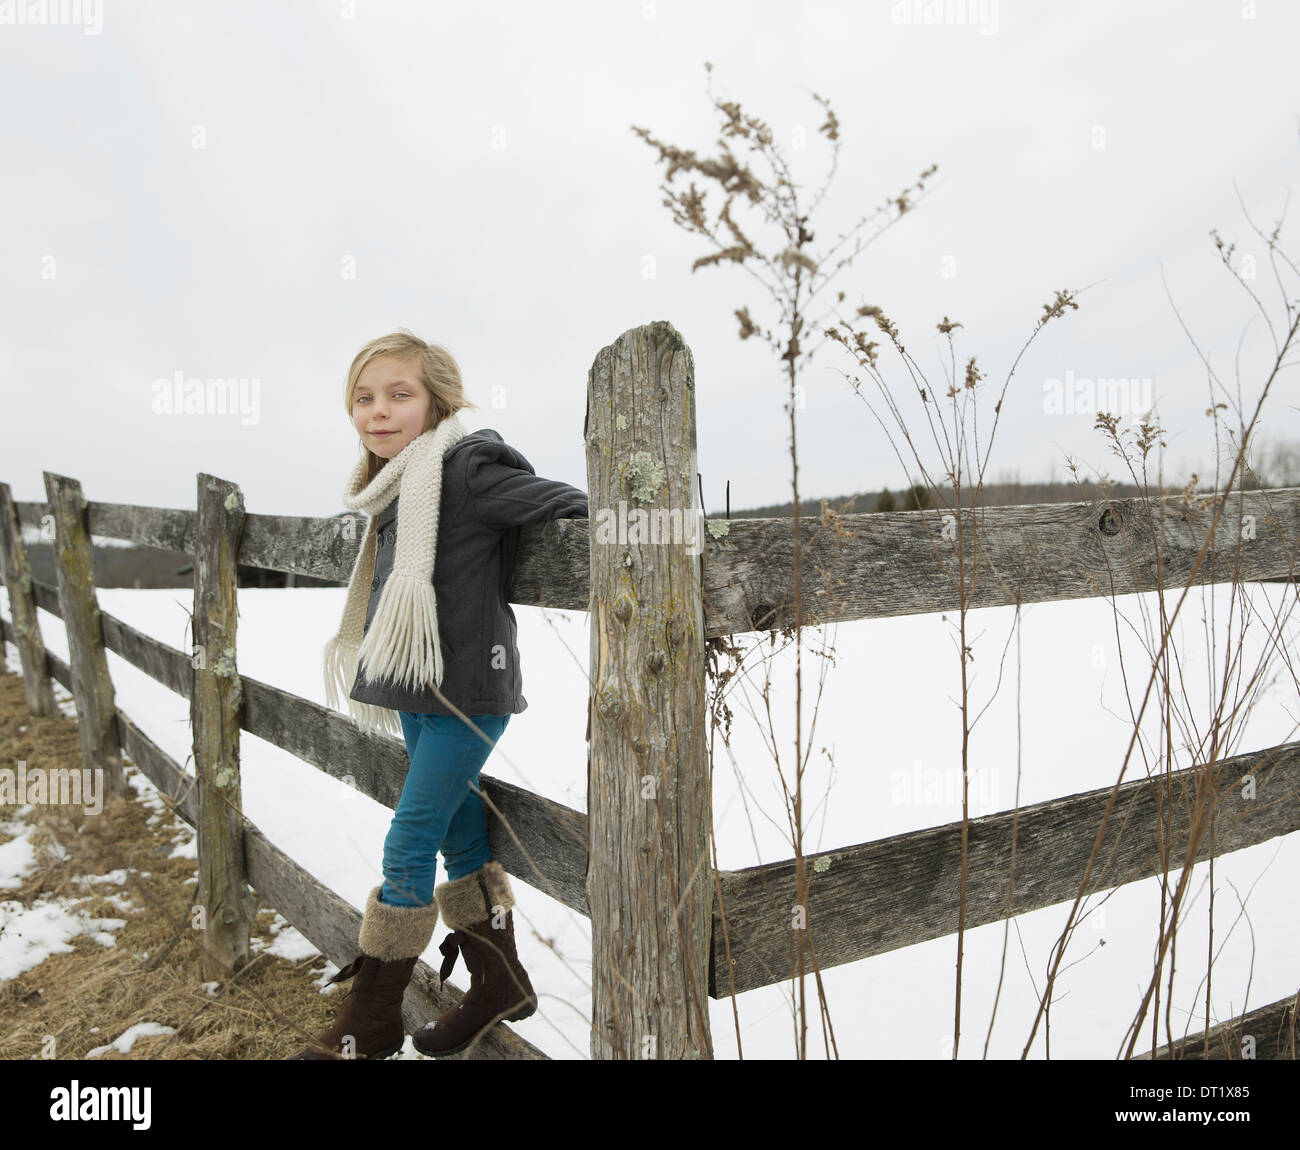 A farm in the snow A girl with a hat and scarf and boots leaning on a fence - Stock Image